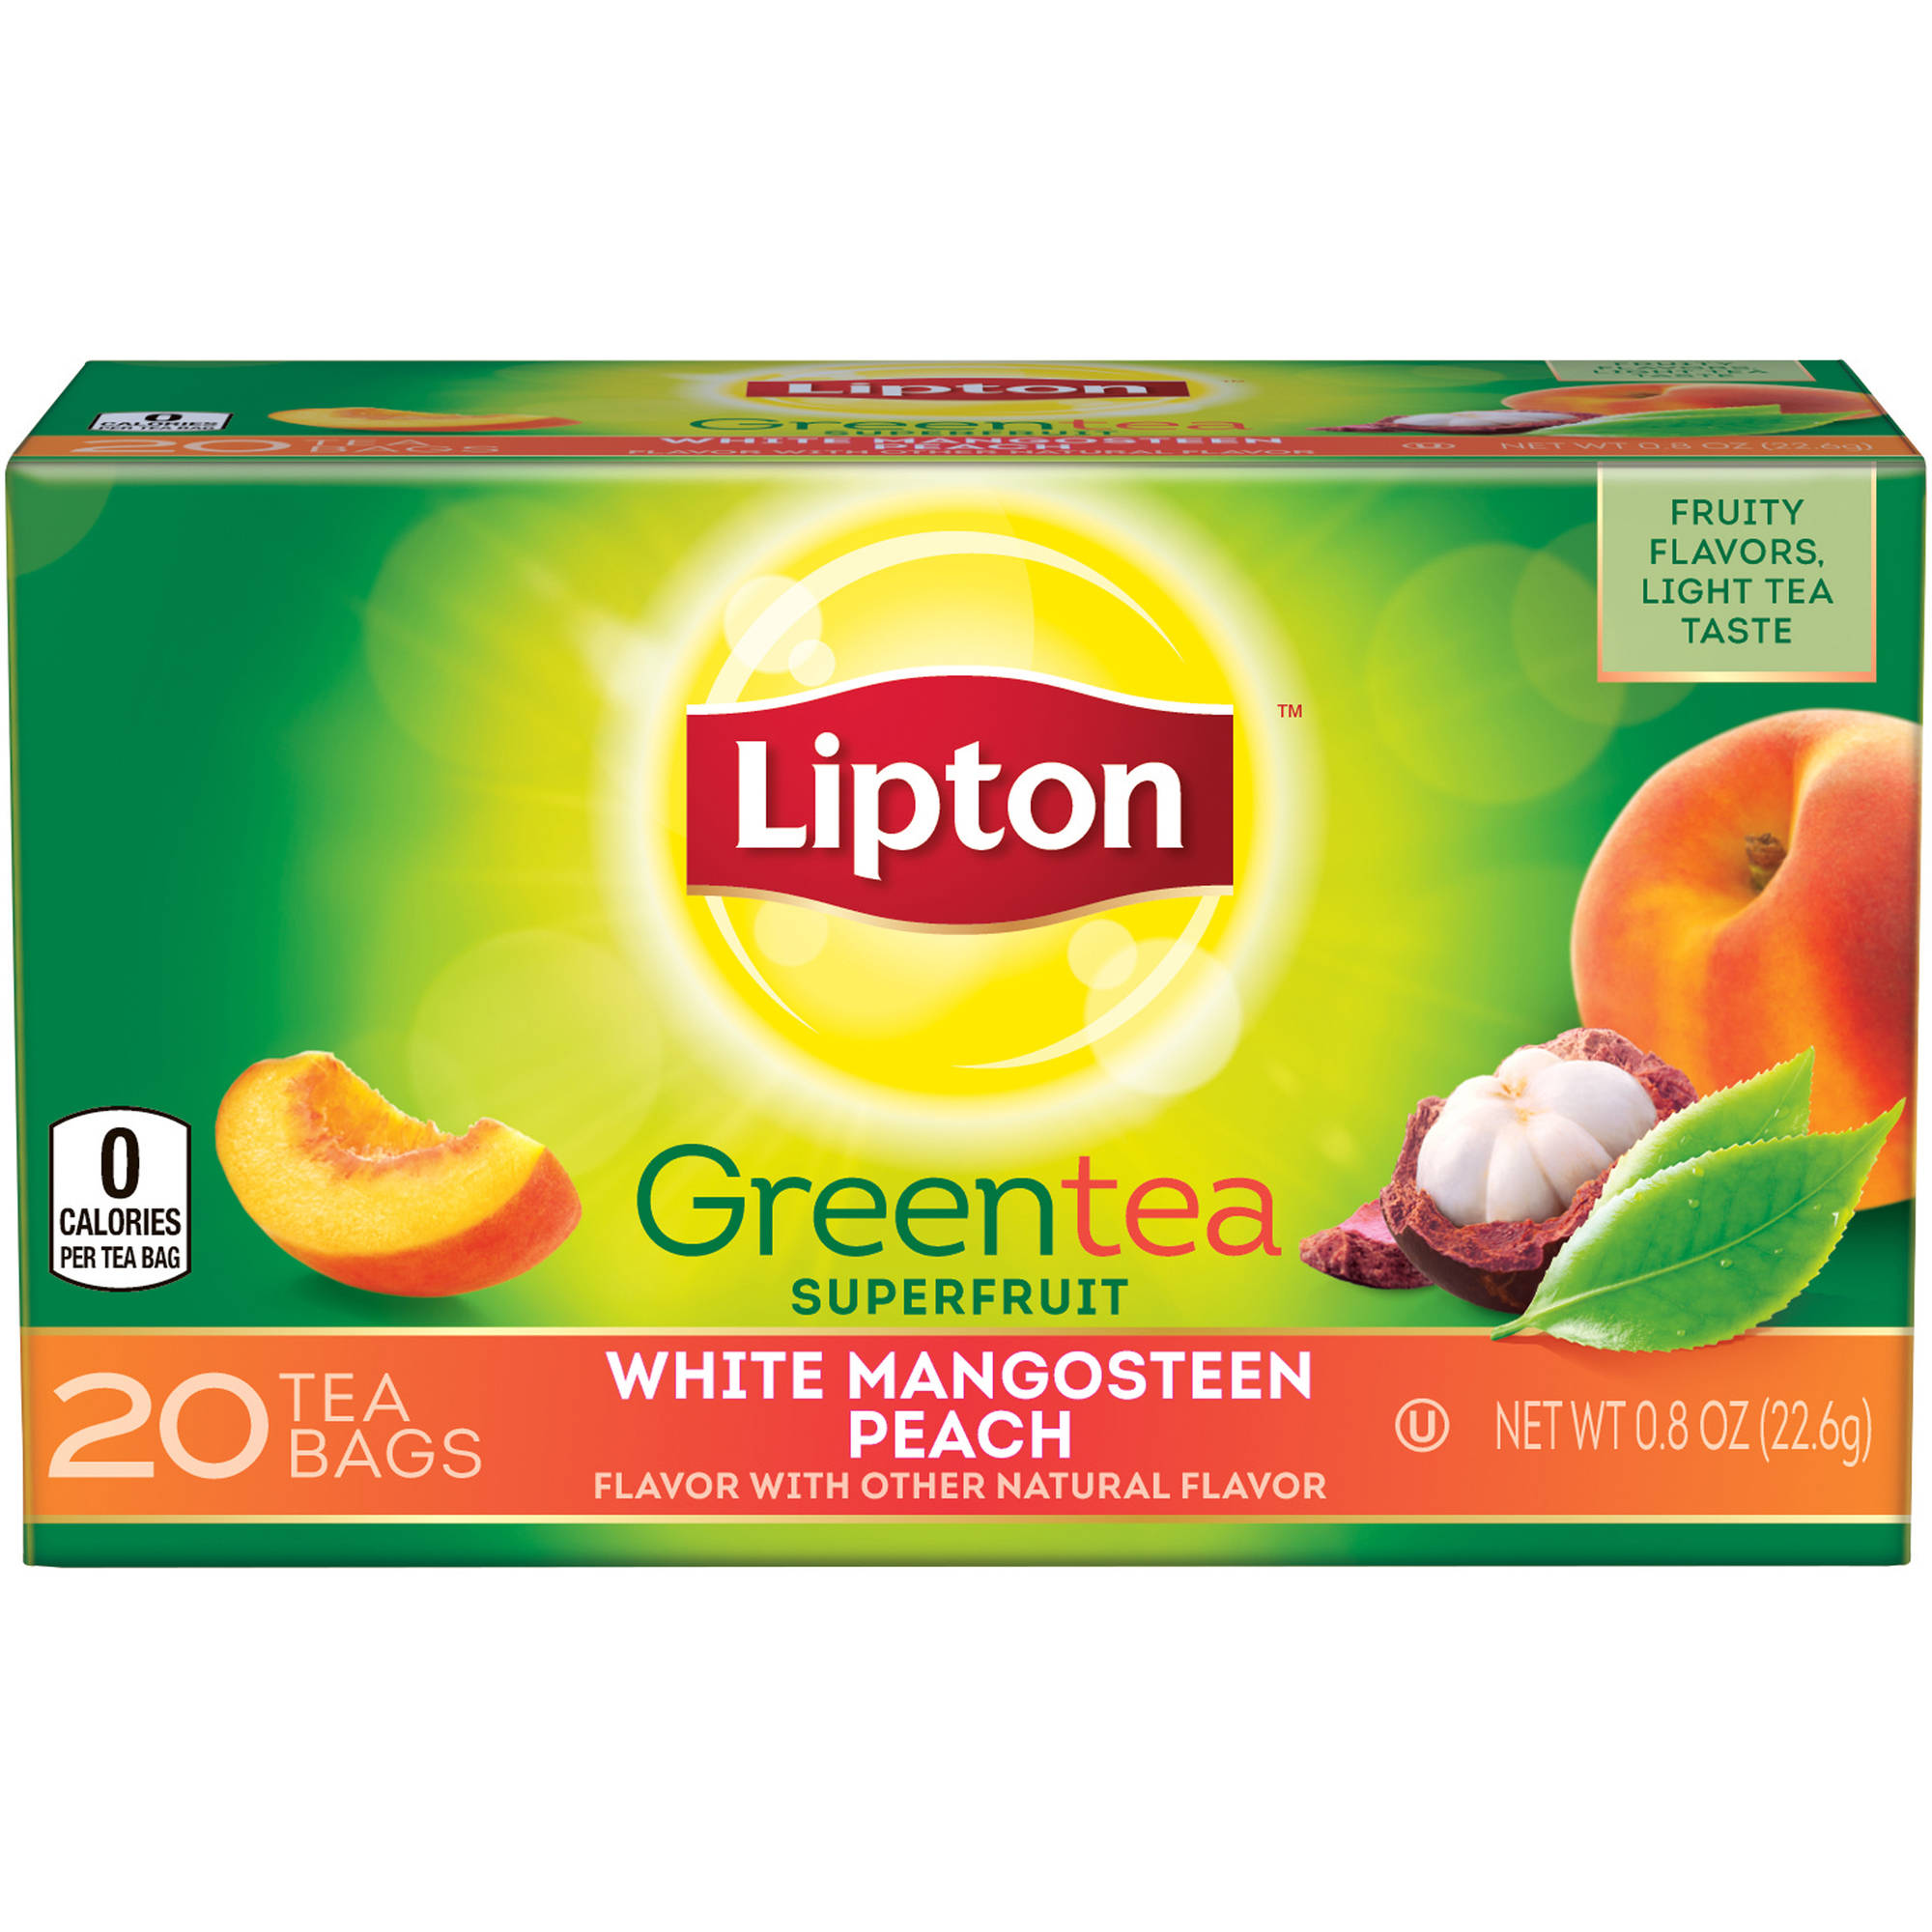 Lipton White Mangosteen Peach Green Tea, 20 ct